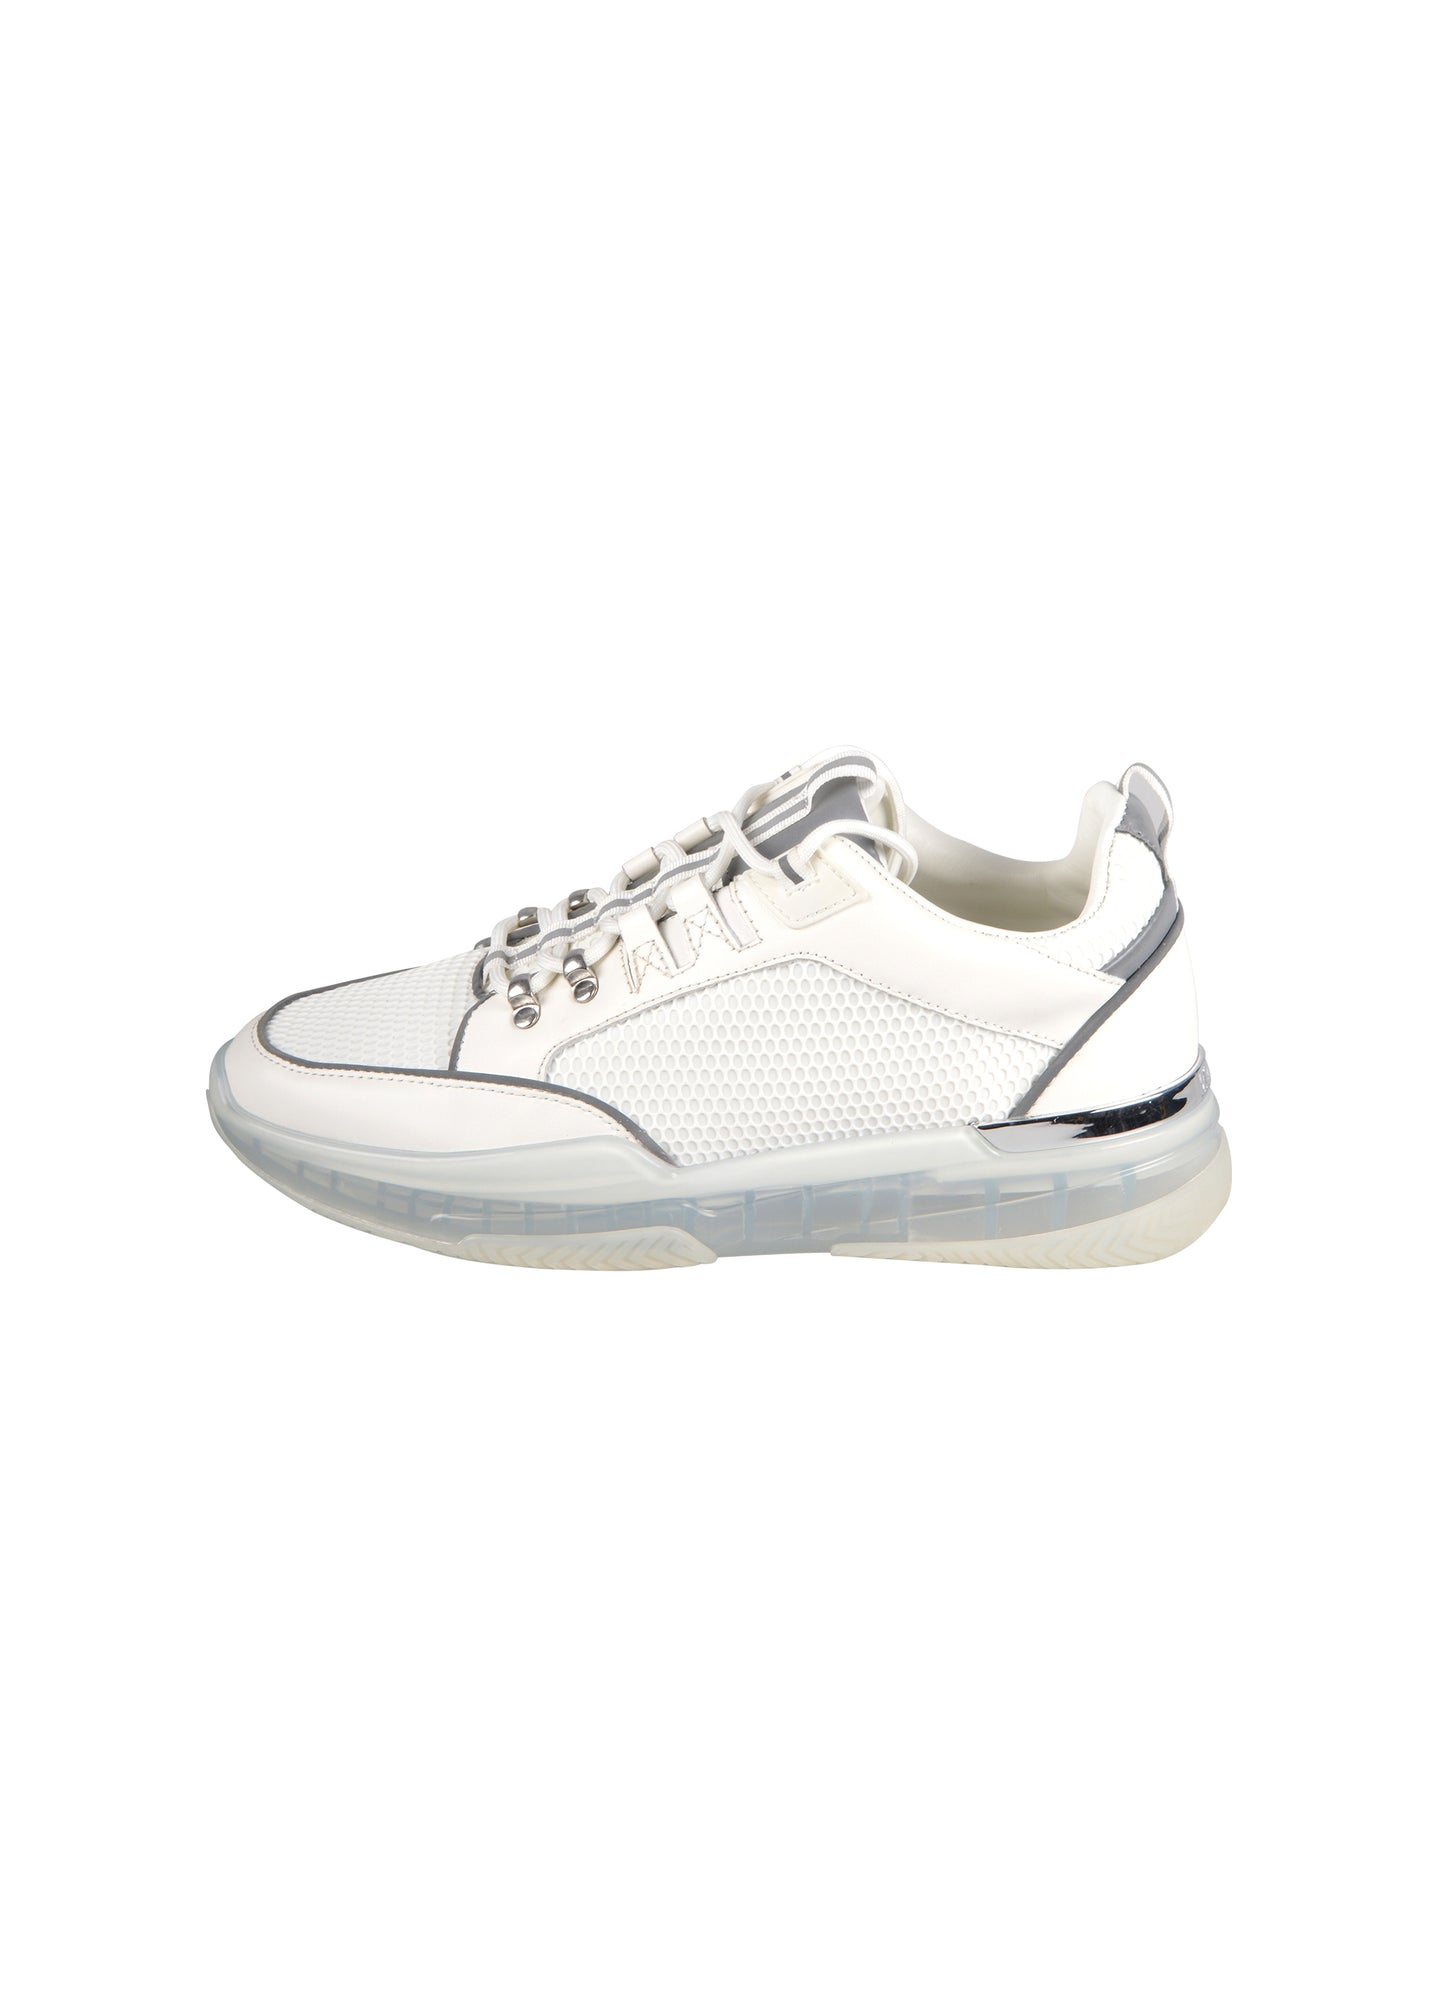 Mallet - Elmore Reflective Trim Clear Sole - 100508 - White